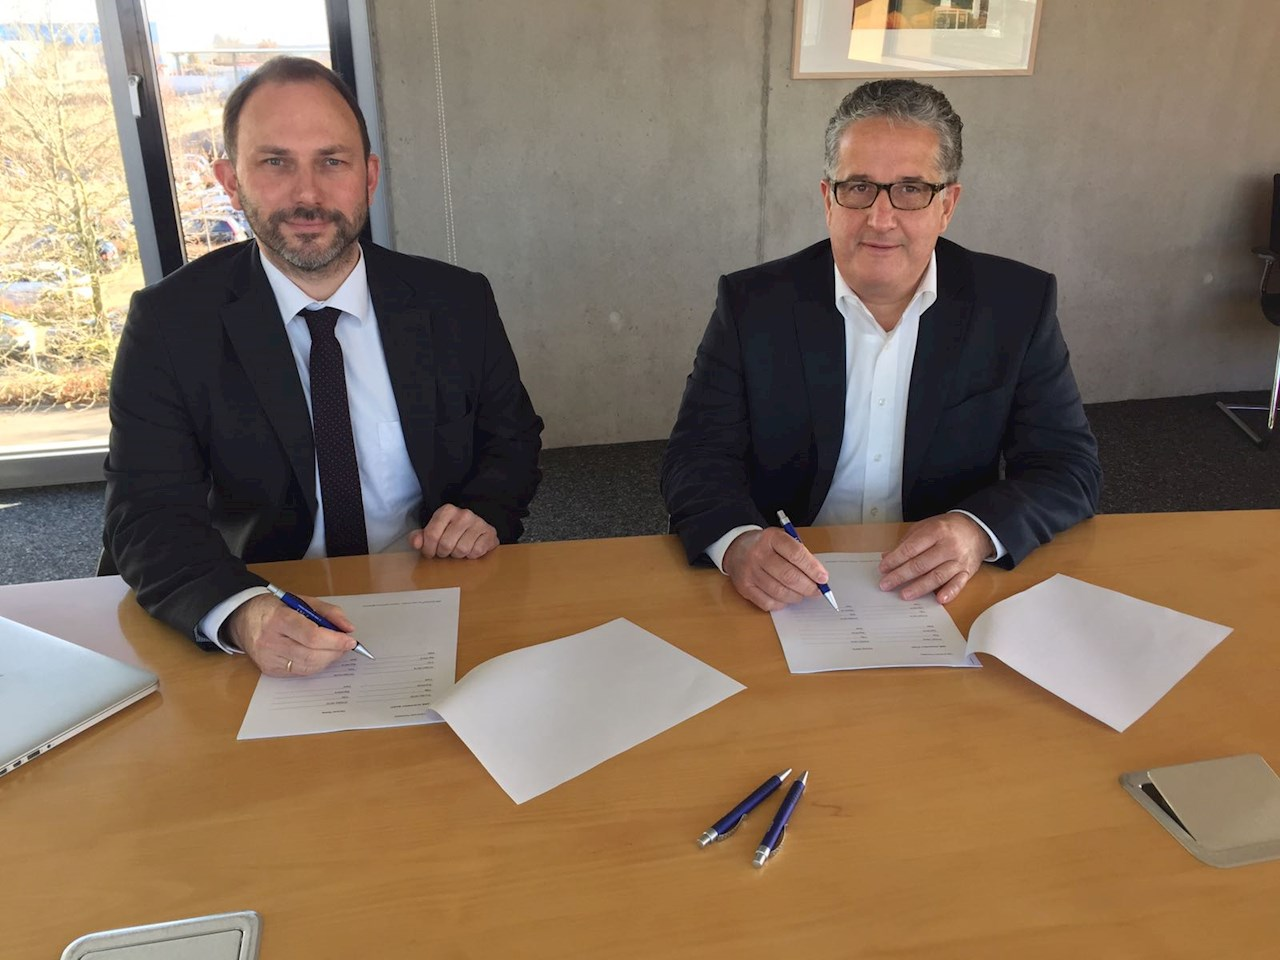 Signing the contract for future collaboration: Gregor Kilian, Head of the Global Product Group Partners & Projects at ABB and Nikolaus Albrecht, CEO of FNT